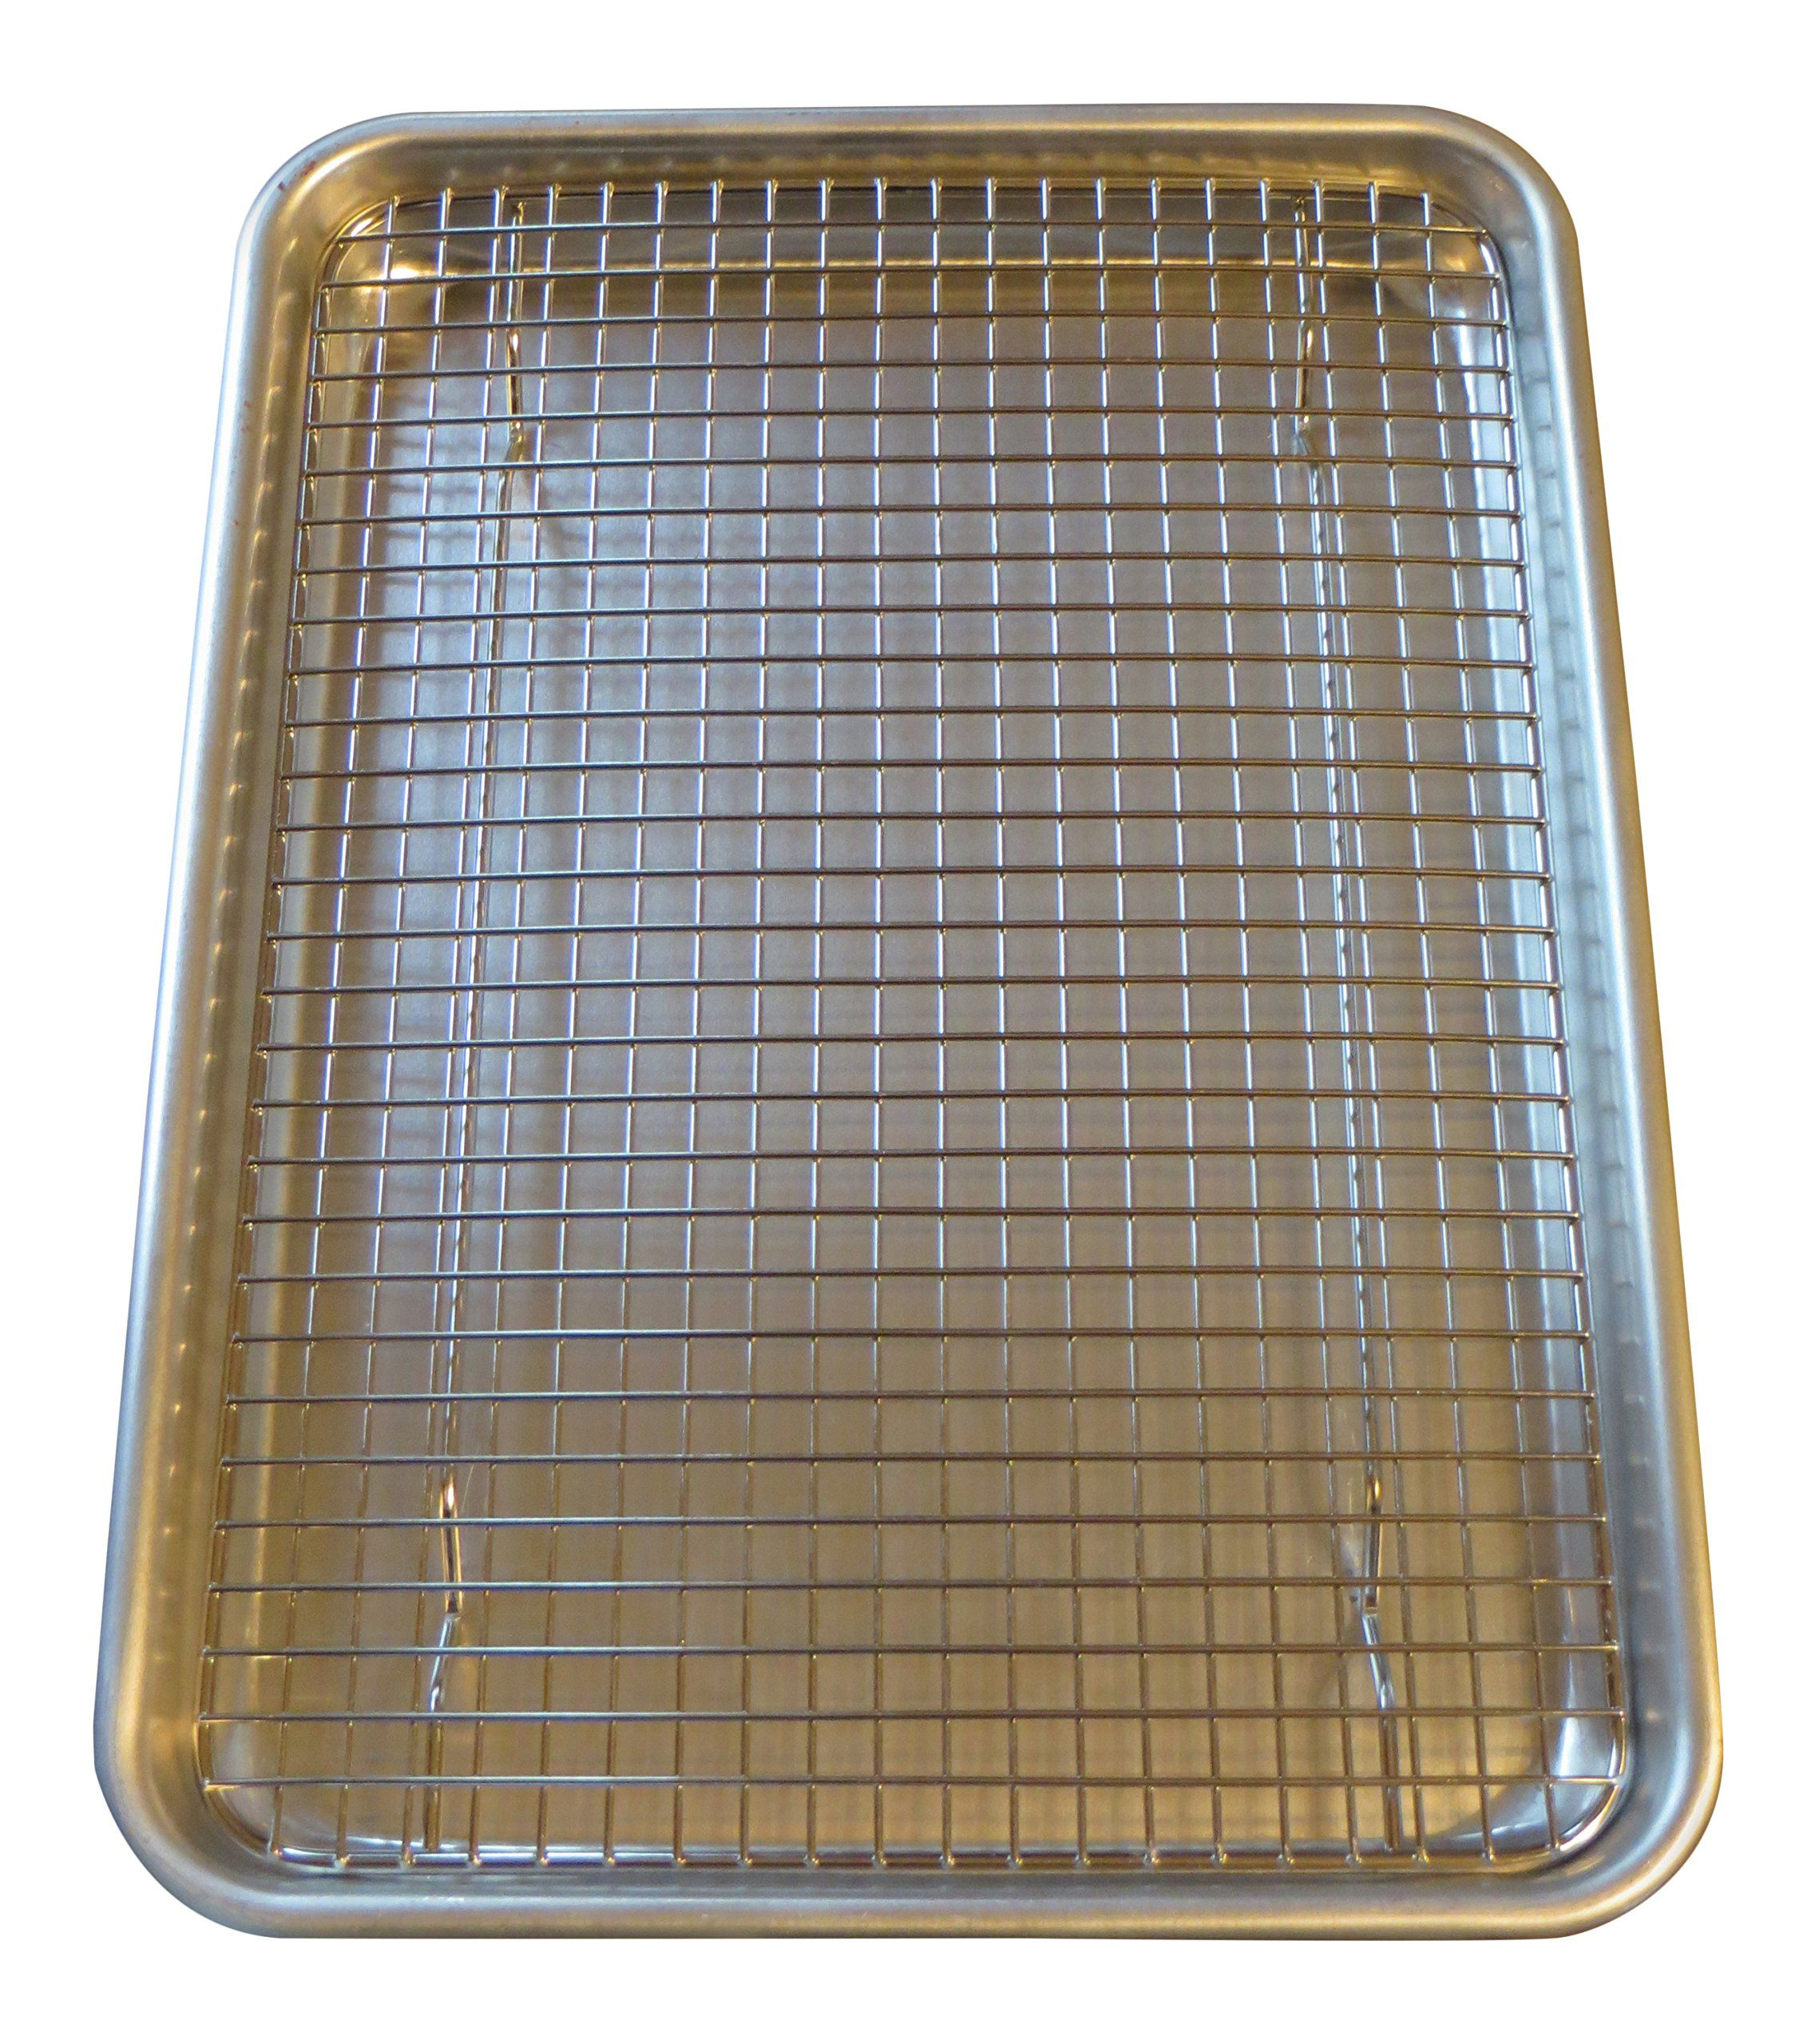 Stainless Steel Cooling Rack 8 5 Inches X 12 Inches Heavy Duty